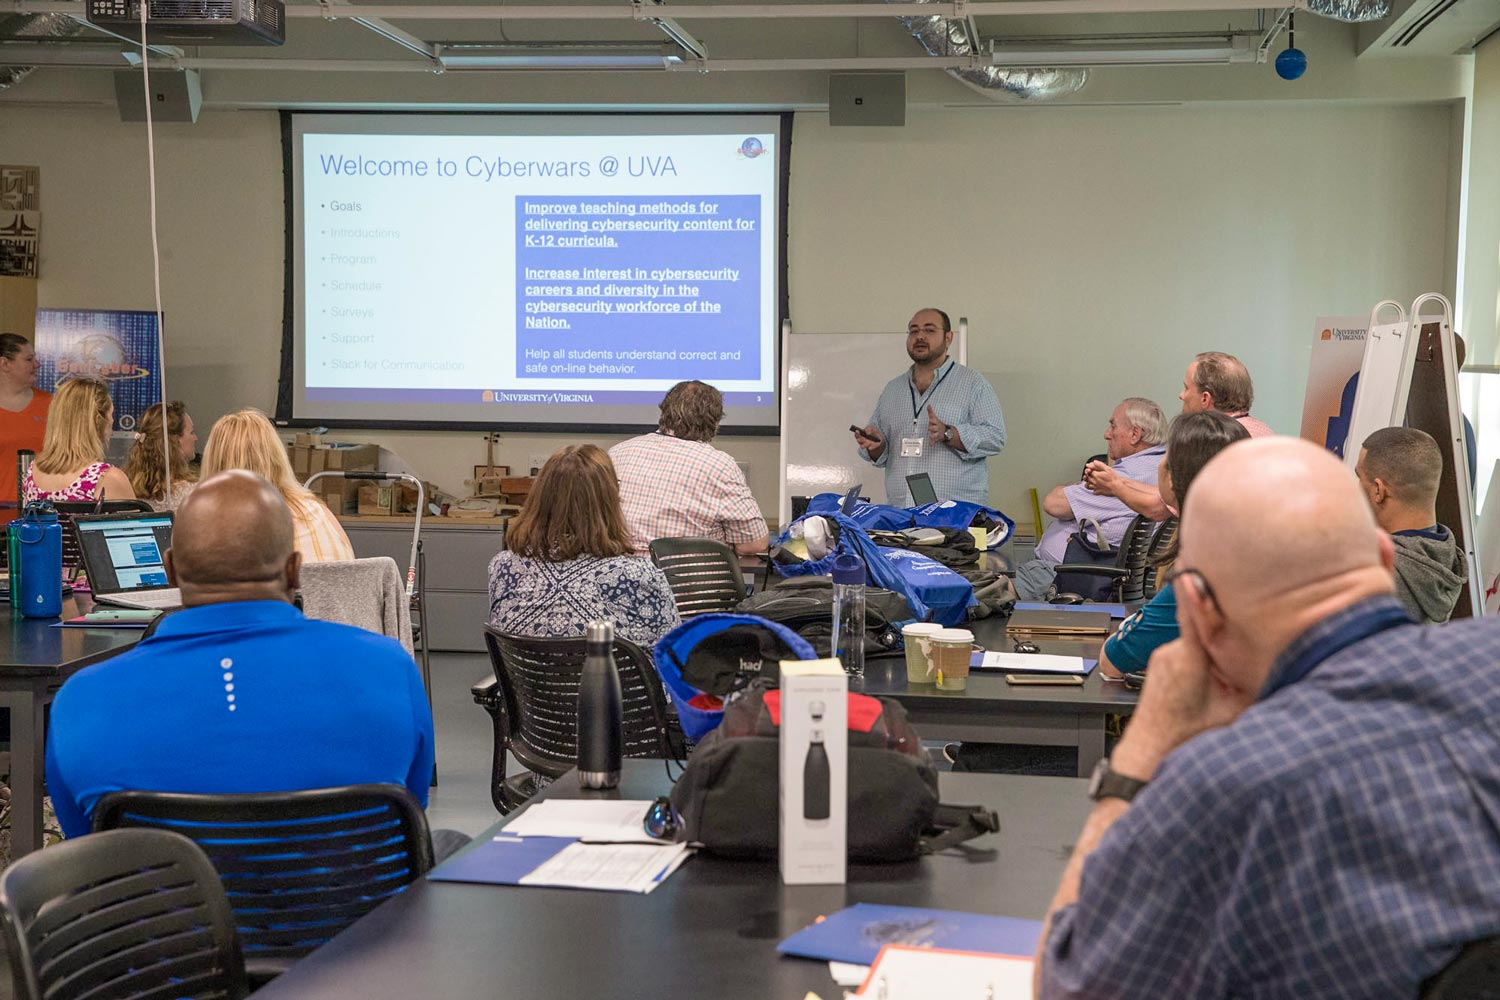 The camp drew 25 teachers, including 21 from Virginia, who learned from UVA faculty how to teach cybersecurity to their students.